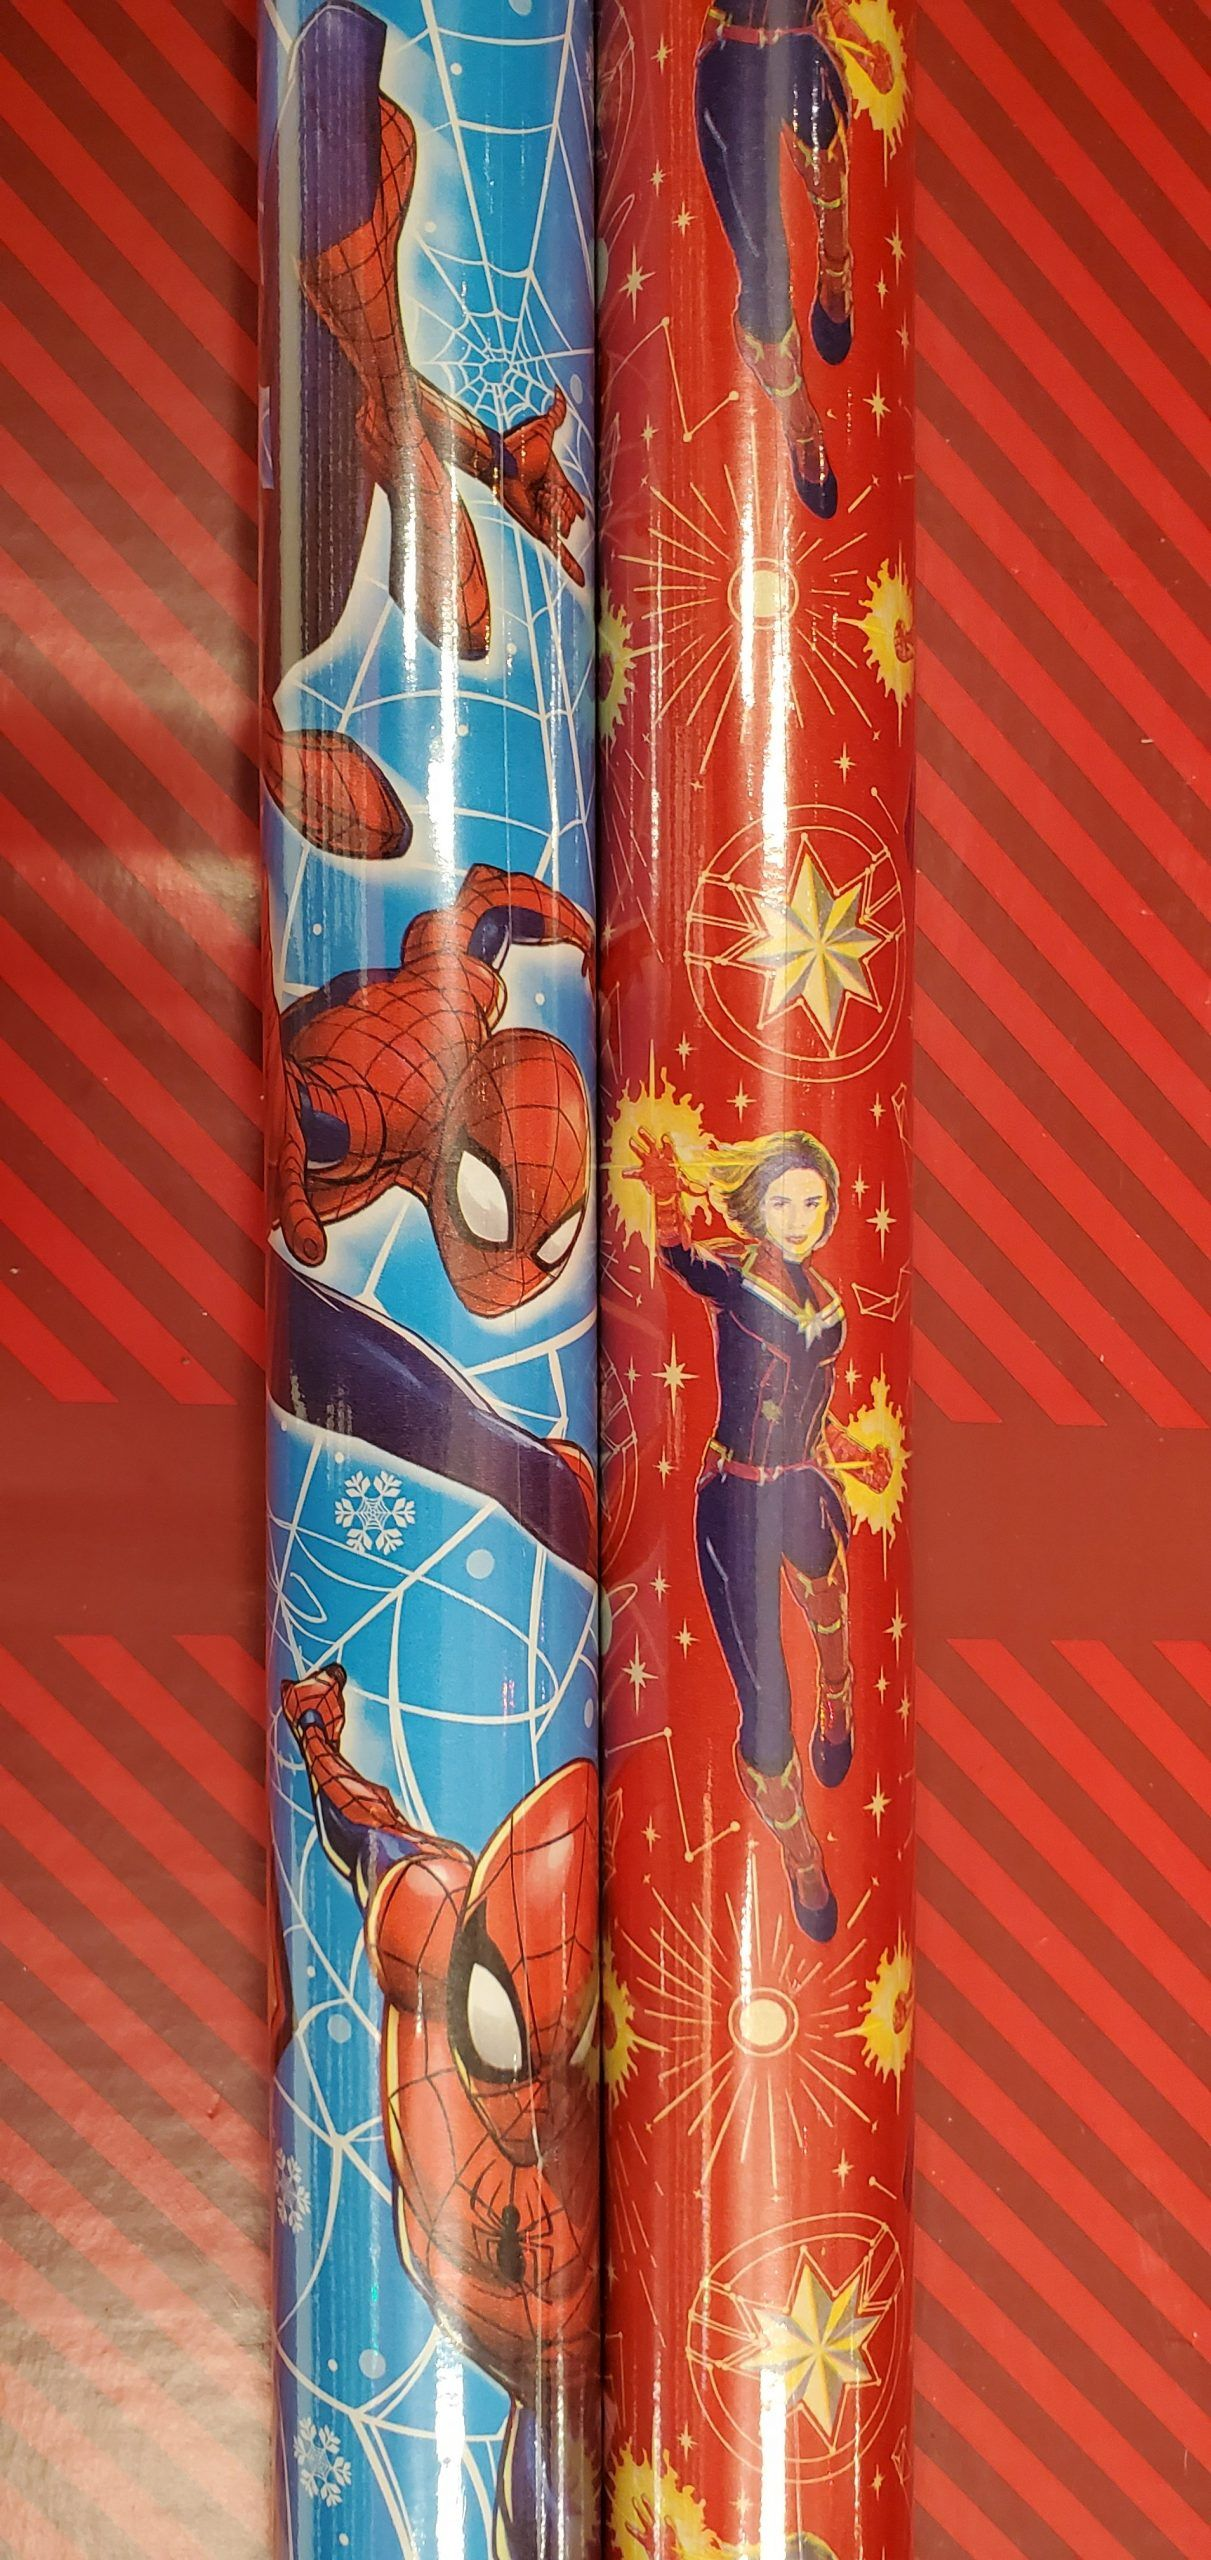 Target Disney Christmas Collection Is Festive And Fun